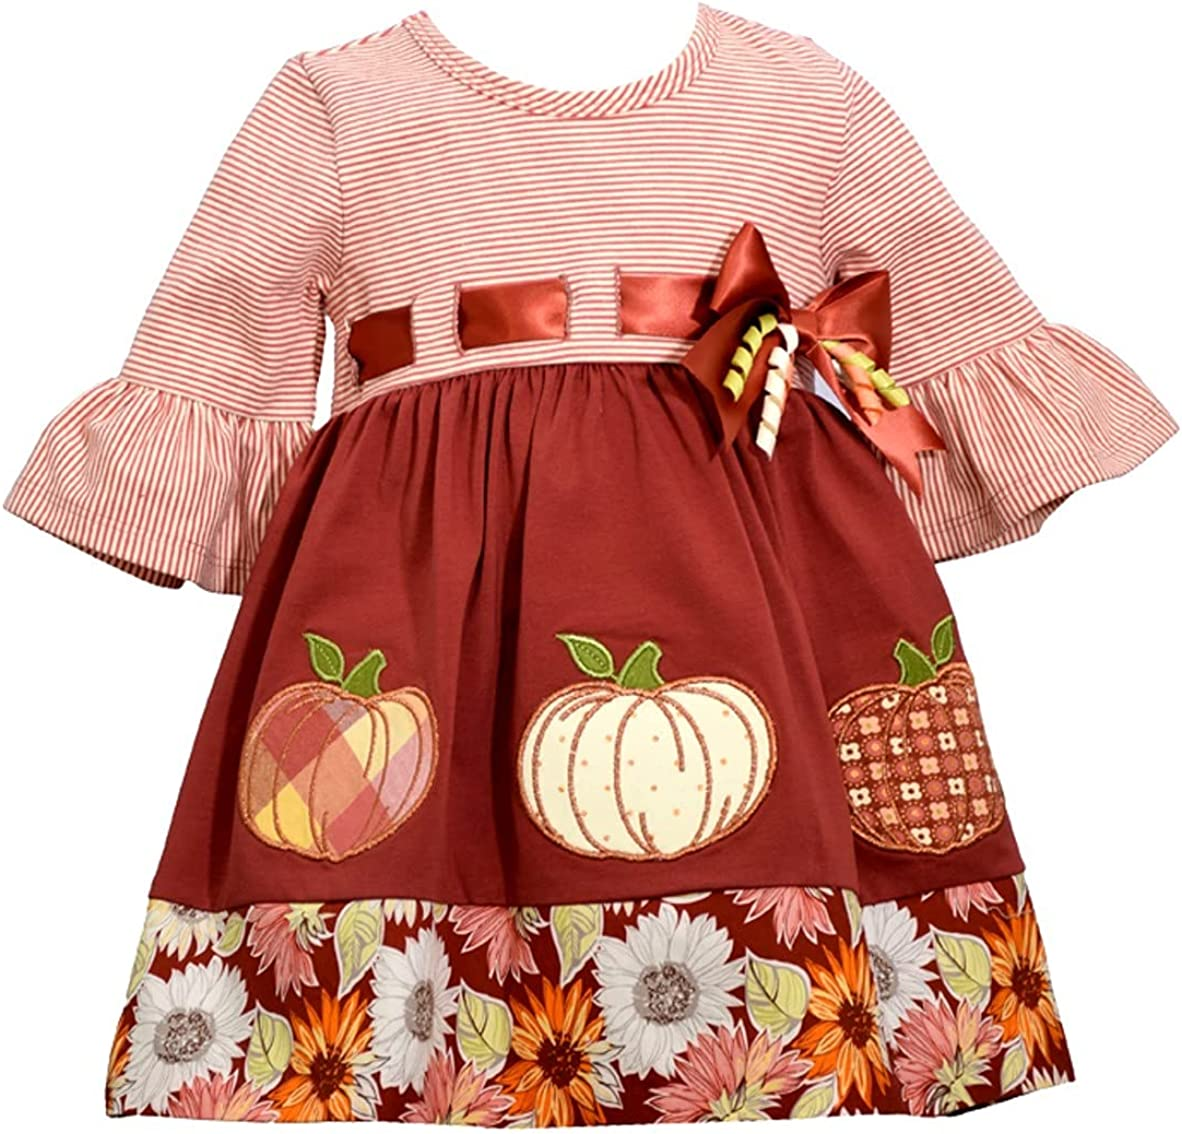 Bonnie Jean Girl's Thanksgiving Outfit - Pumpkin Coral Omaha Mall Legg Luxury Pink